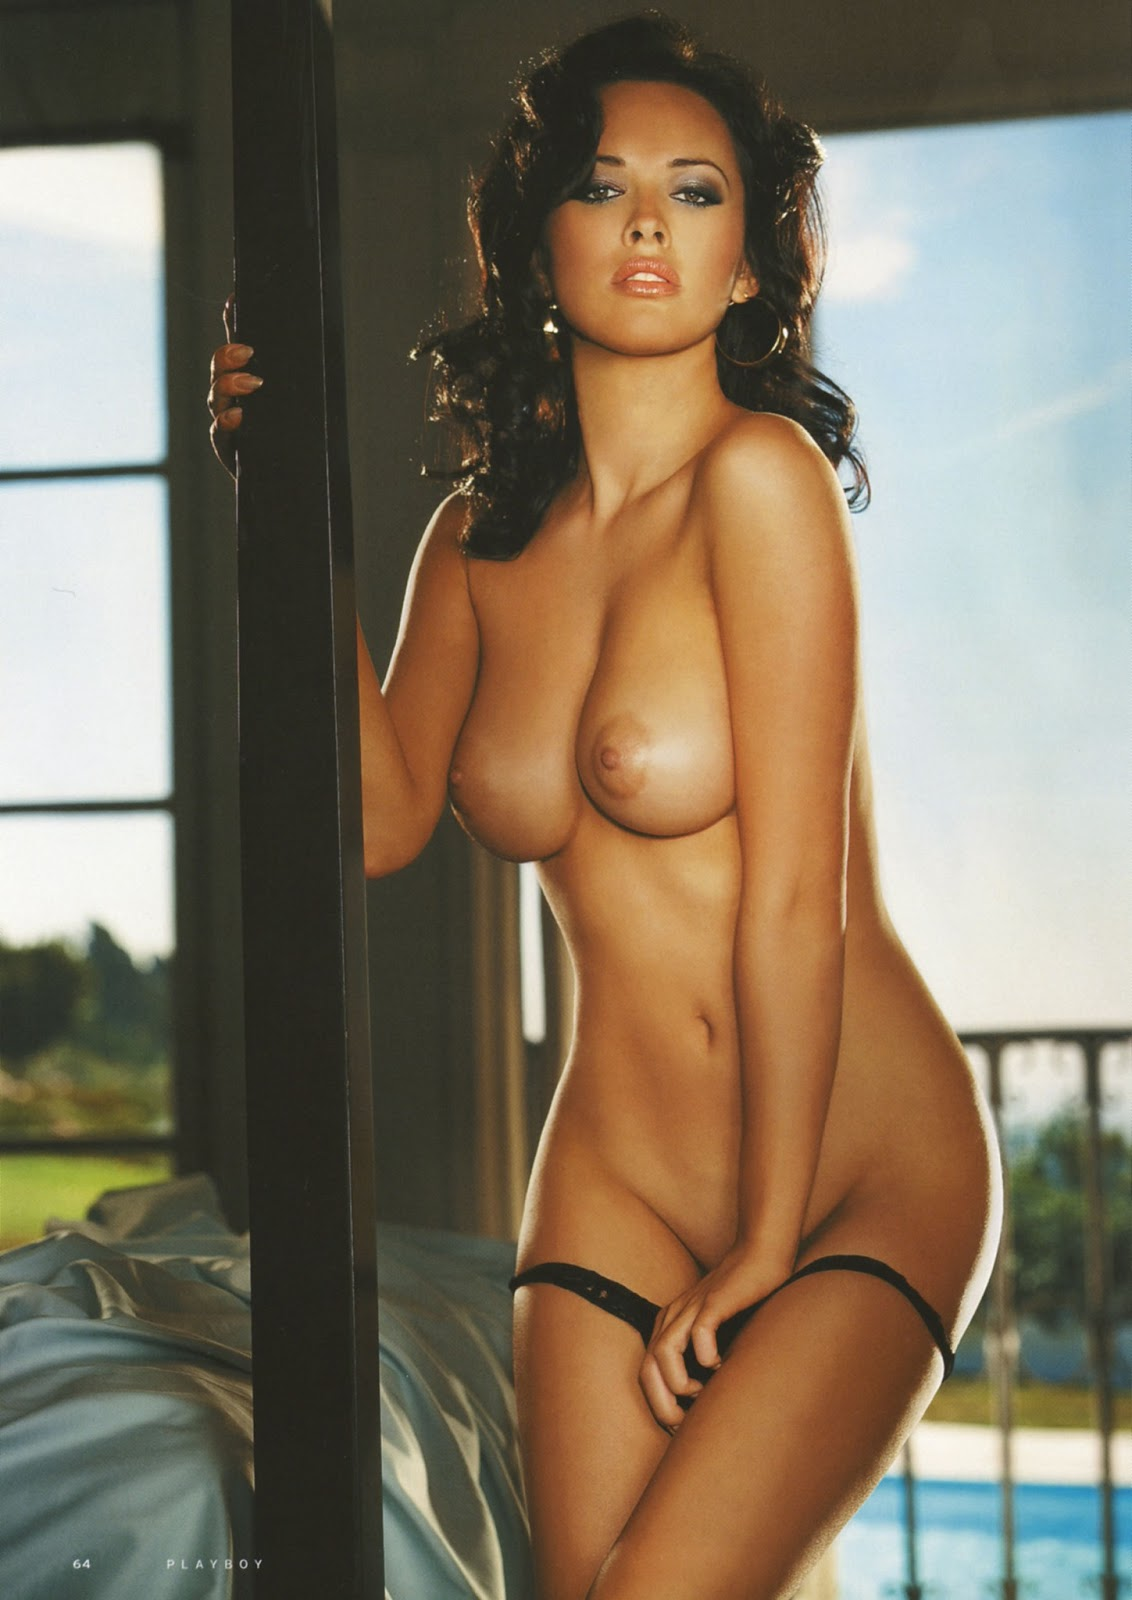 Dasha Astafieva Nude Pics Simple ukrainian sex symbol number one - dasha astafieva in playboy